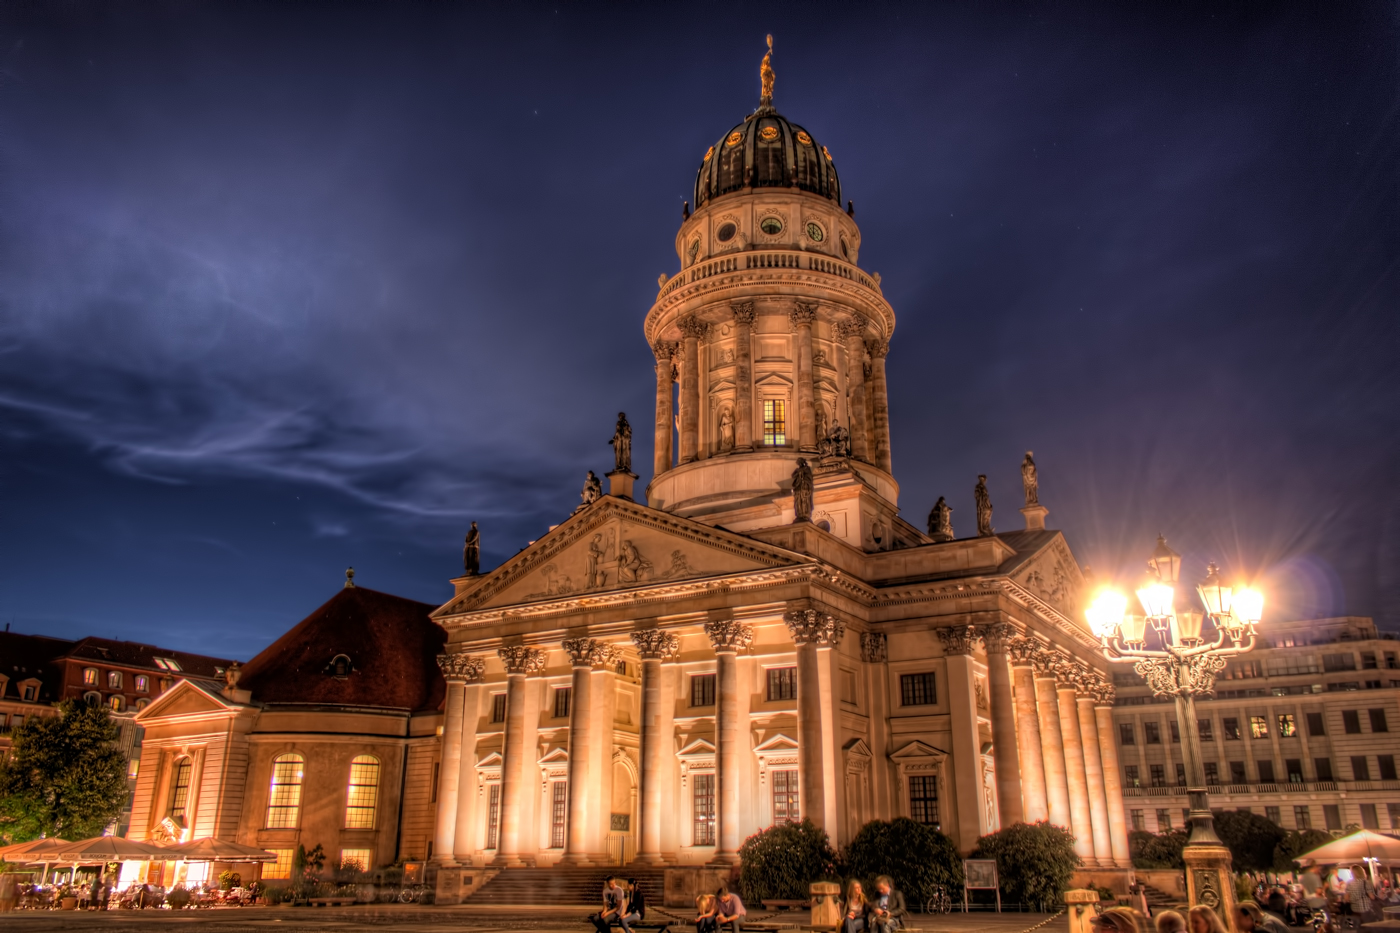 French Cathedral in Berlin